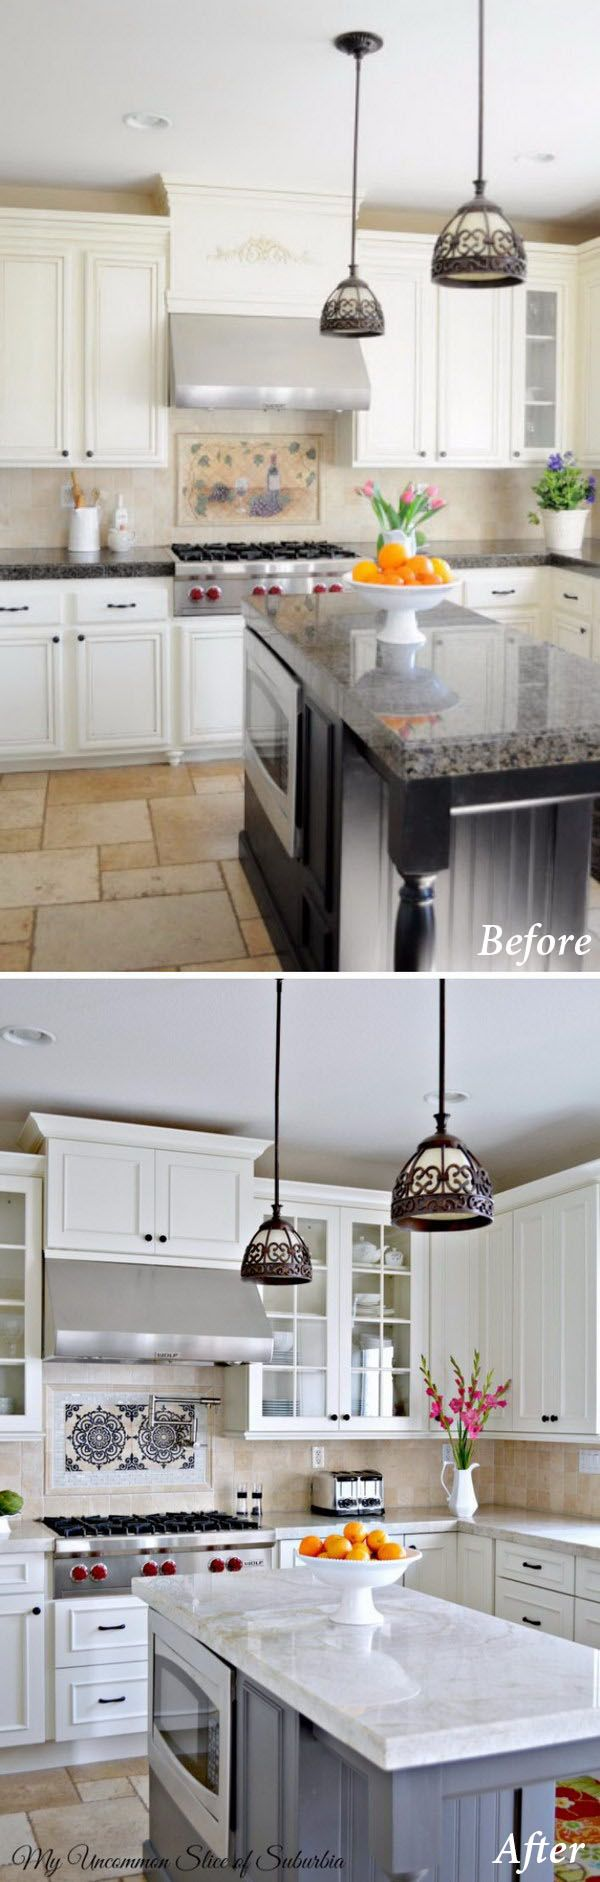 Genius kitchen makeover ideas that would save you money kitchens